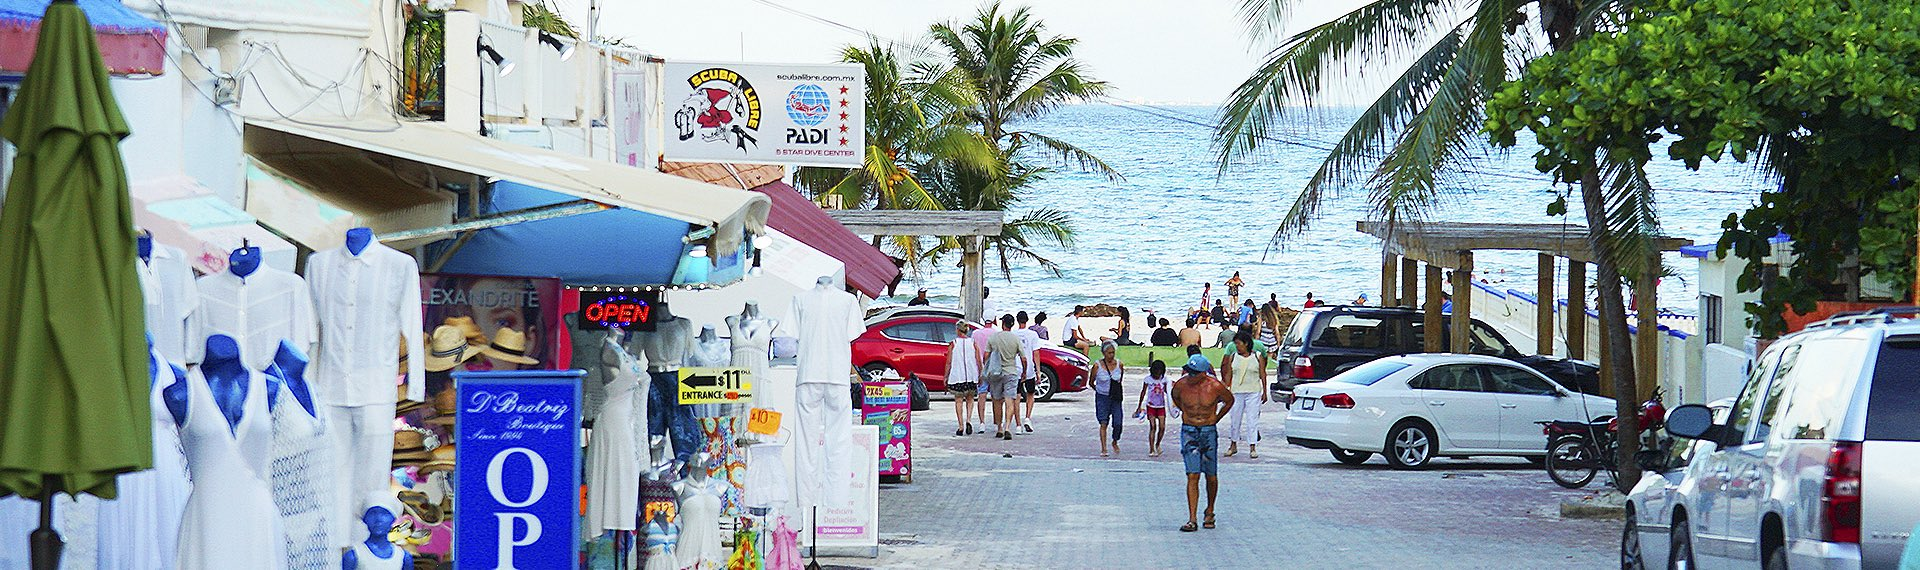 Shops, bars and beach on the 5th avenue of Playa del Carmen